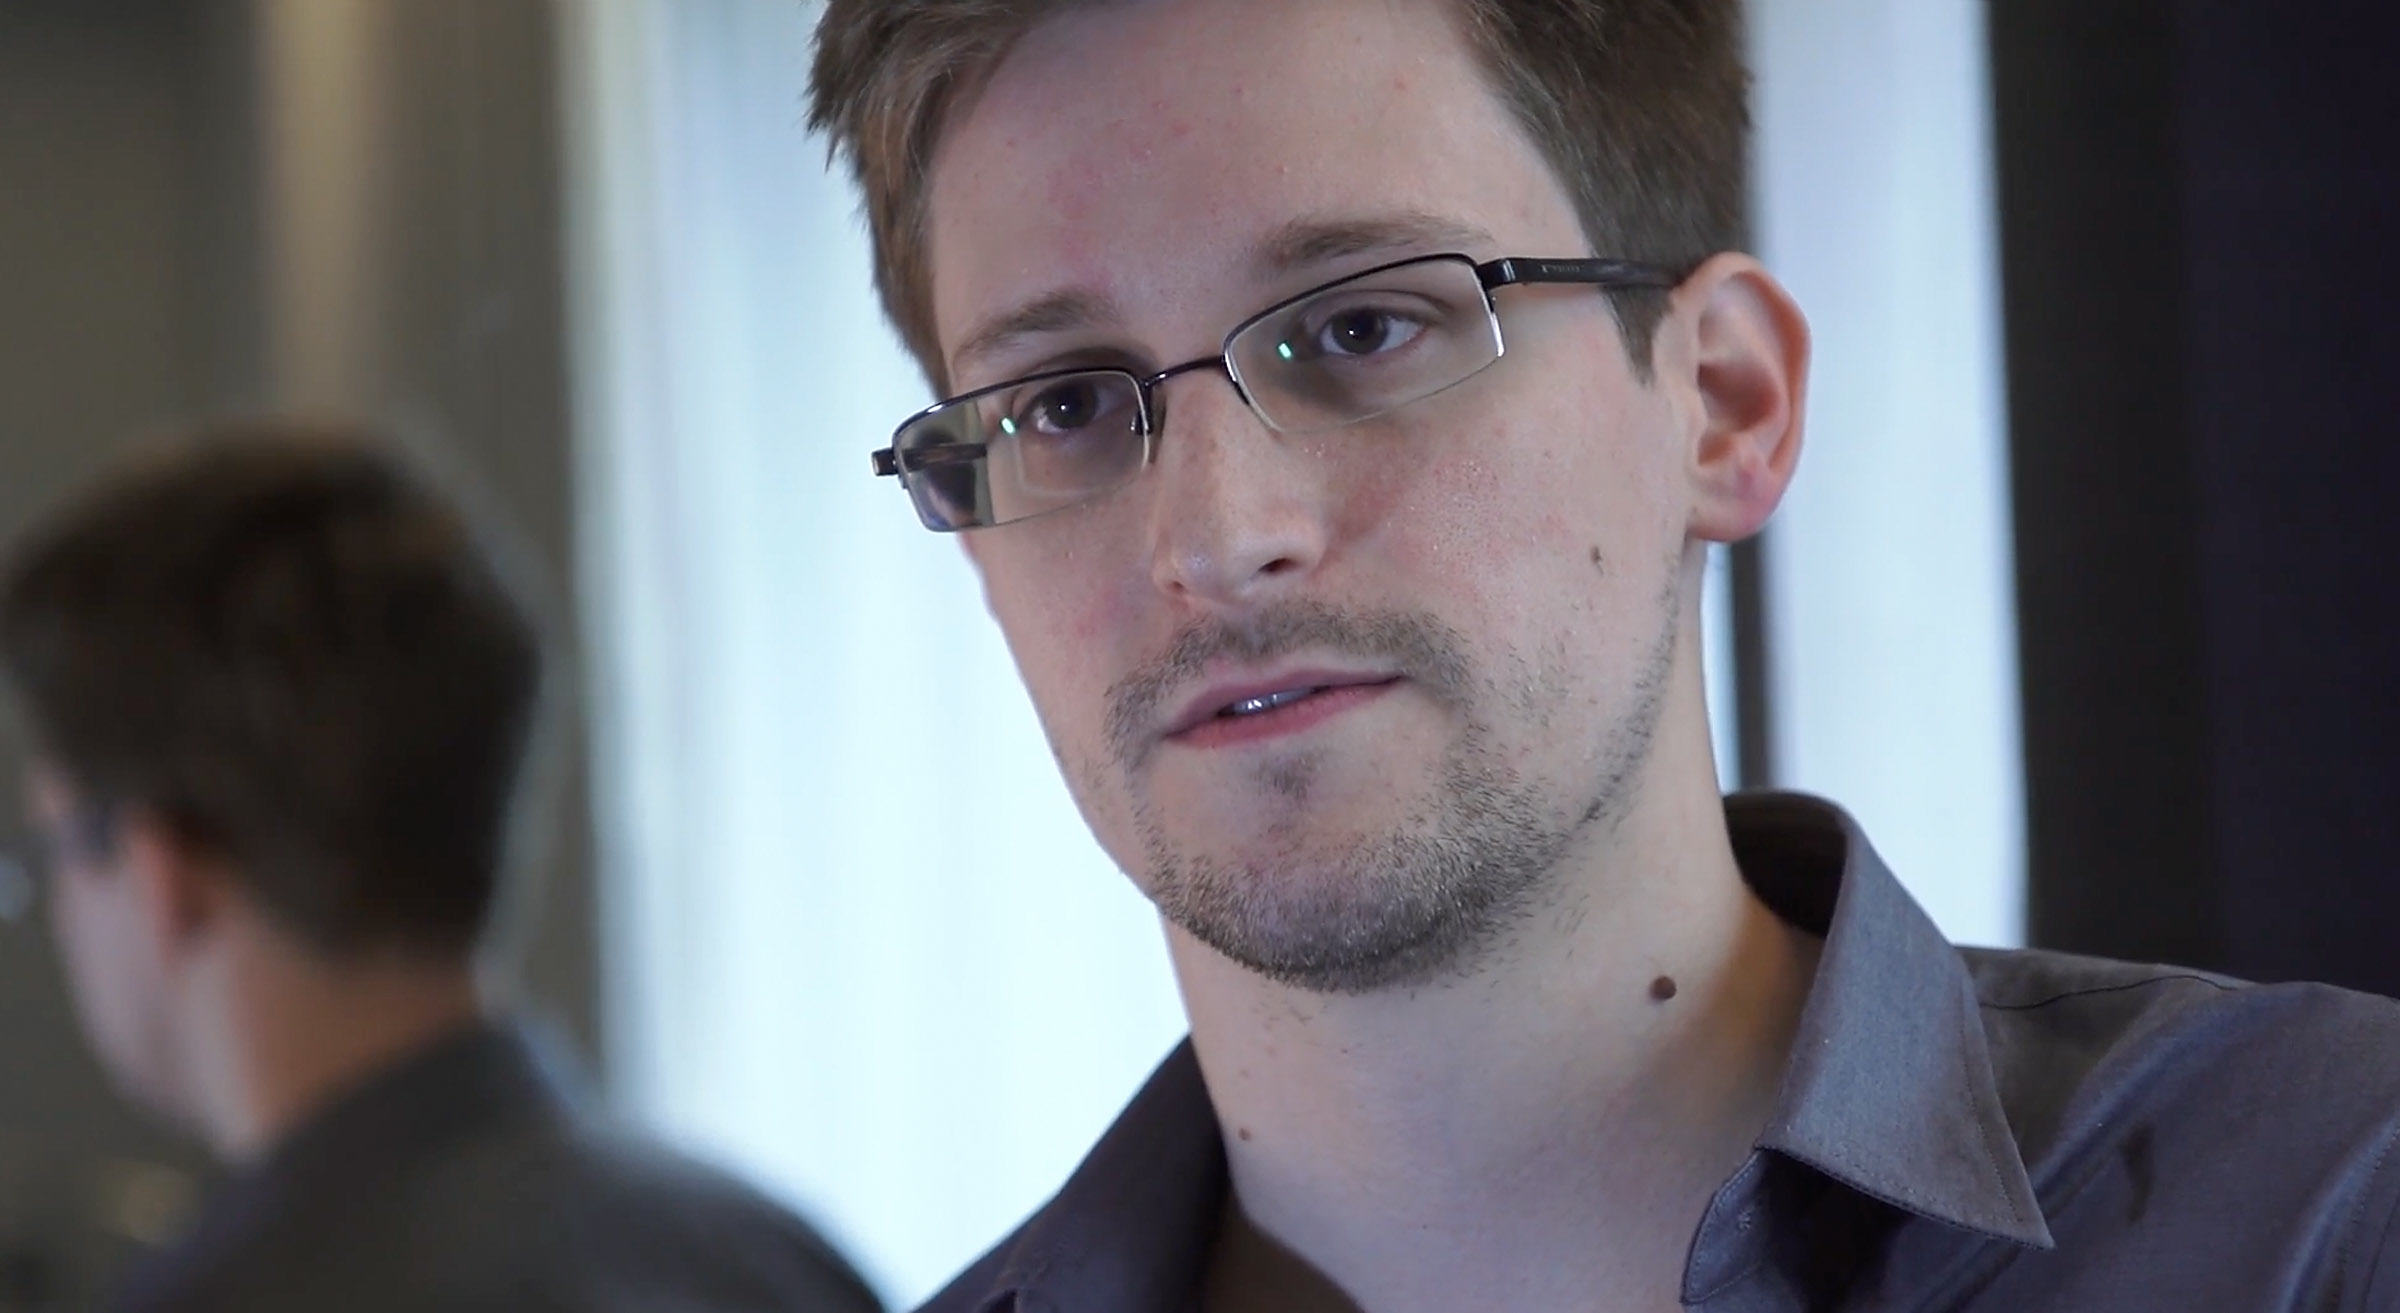 Intelligence Capabilities Exposed By Edward Snowden Shut Down, Was He A Hero After All? 170248179 2